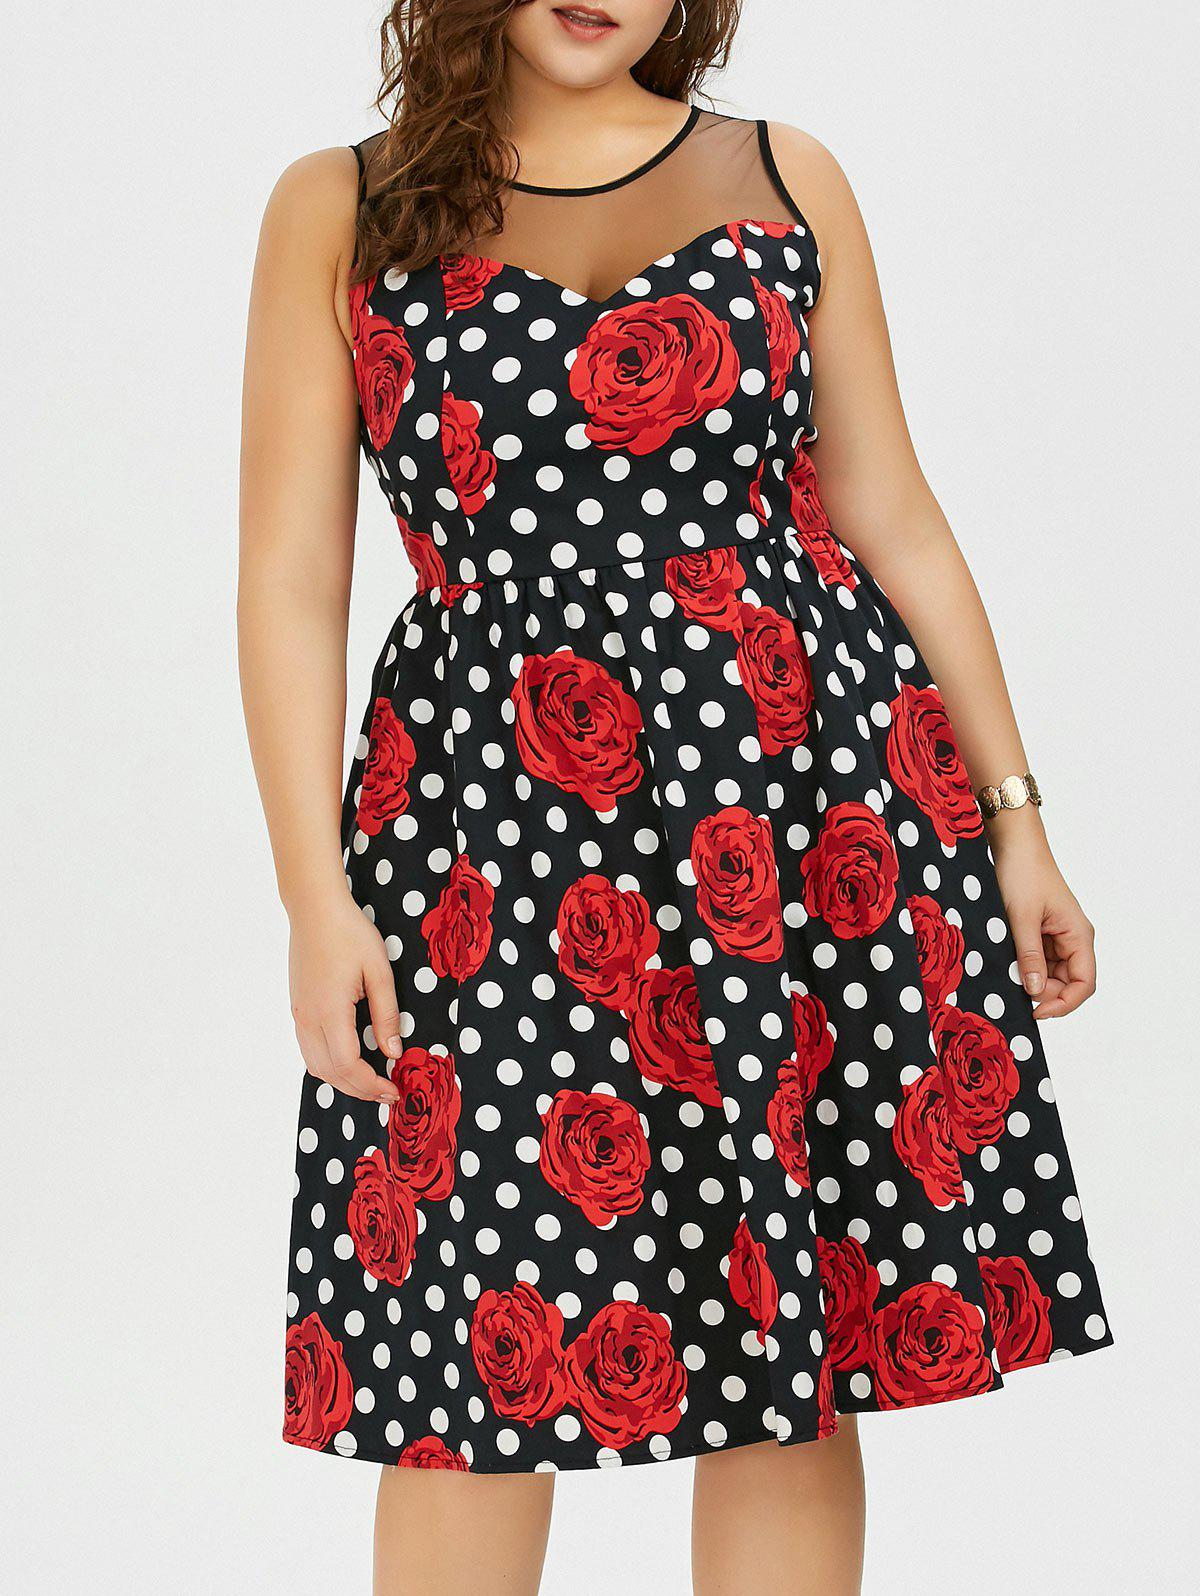 Plus Size Floral and Polka Dot Bridesmaid Dress - BLACK/WHITE/RED 2XL